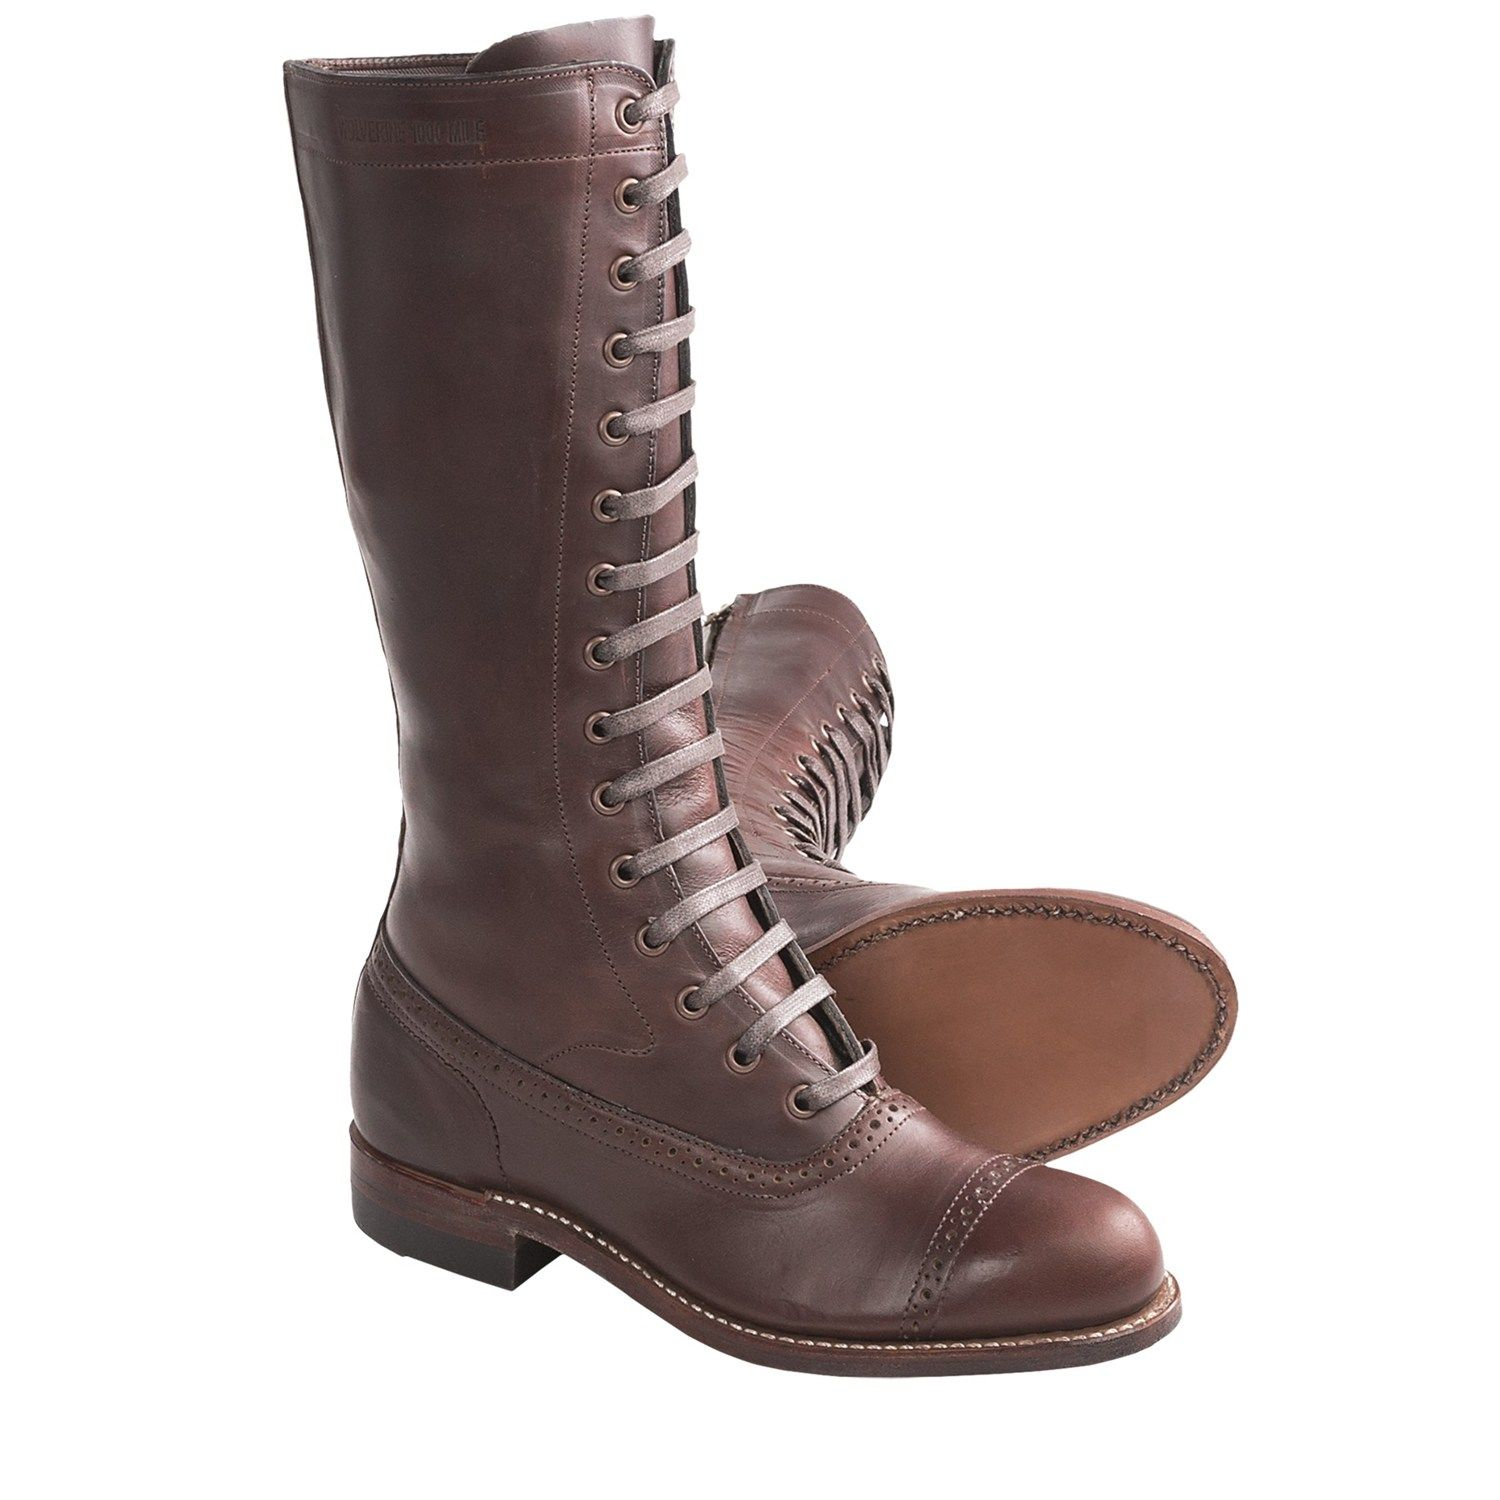 """657bf3e795d Wolverine 1000 Mile Sophia 12"""" Boots - Size Zip, Factory 2nds (For ..."""